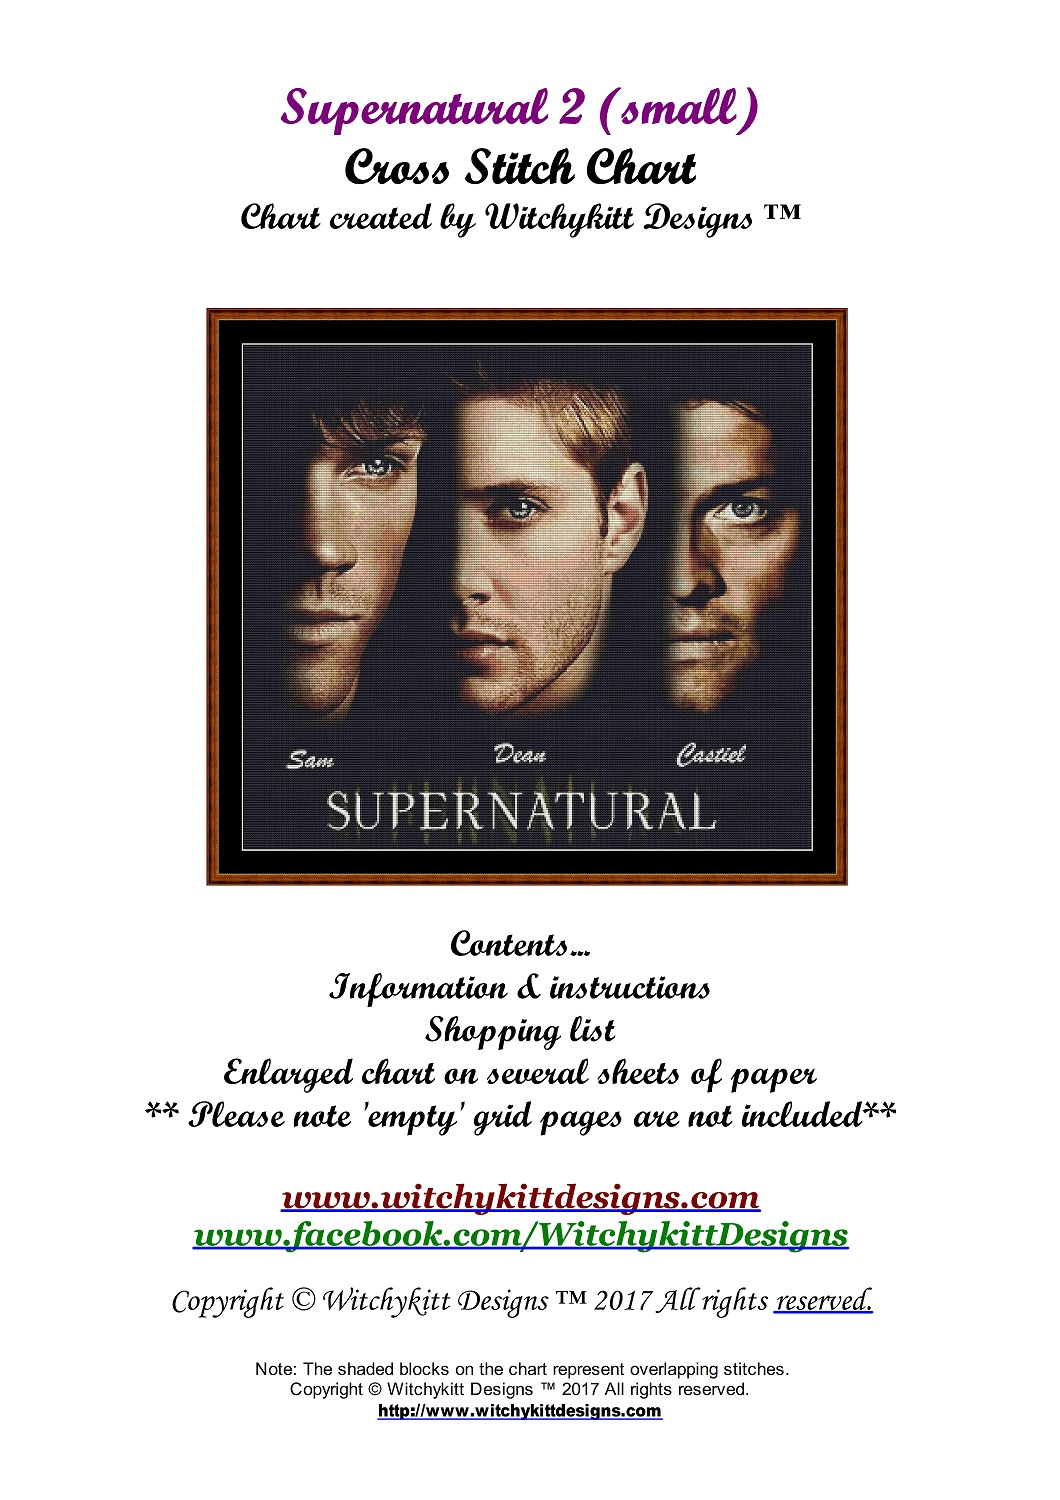 Supernatural 2 (SMALL) Cross Stitch - Click Image to Close